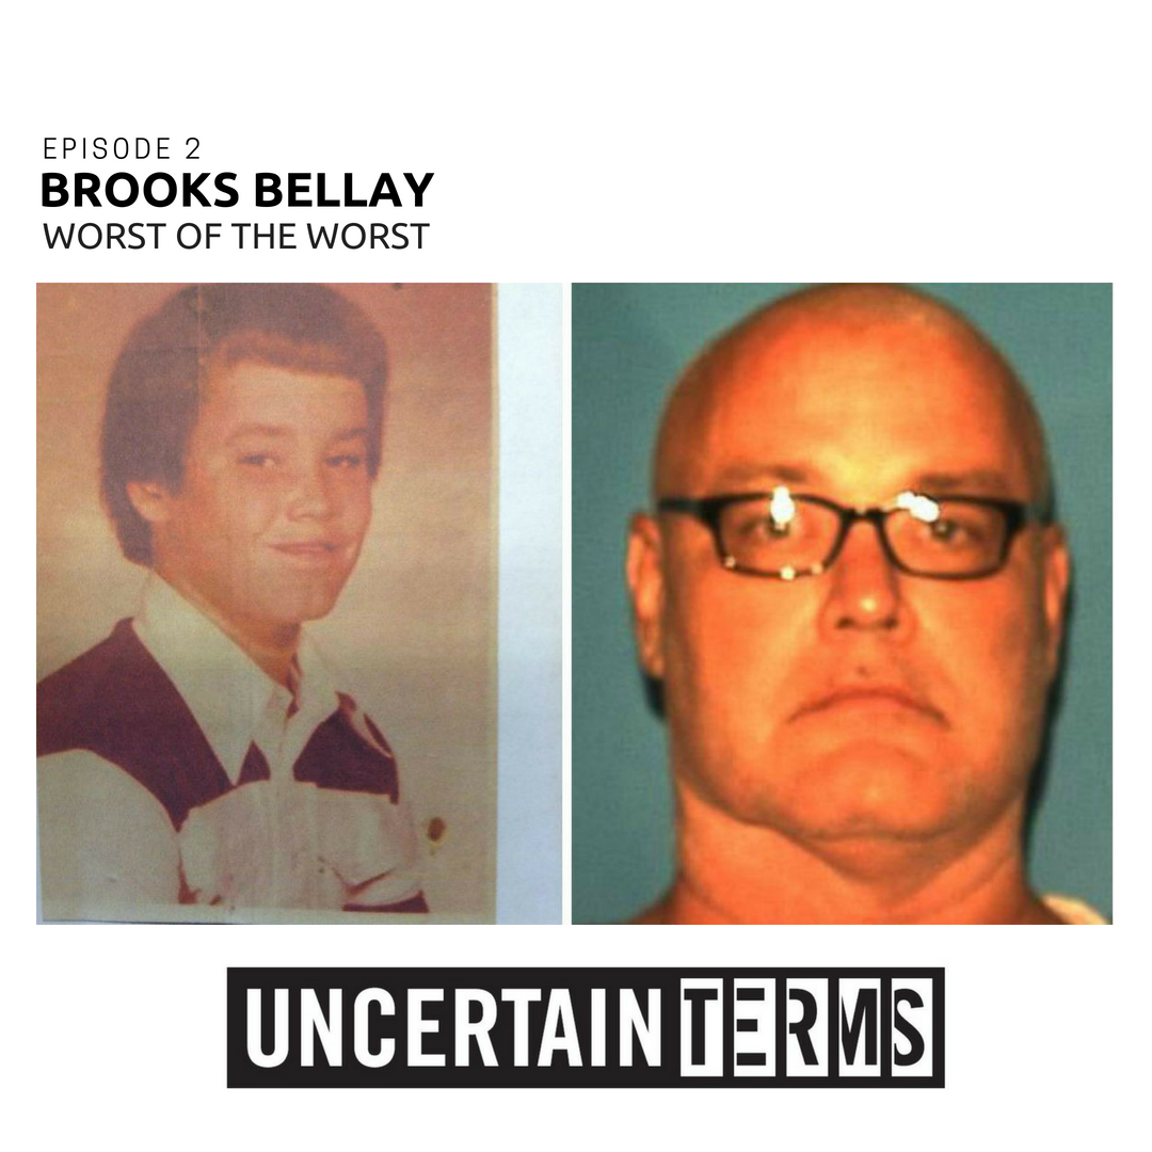 Brooks Bellay was 14 when he killed a 4-year-old Vero Beach girl in 1968.